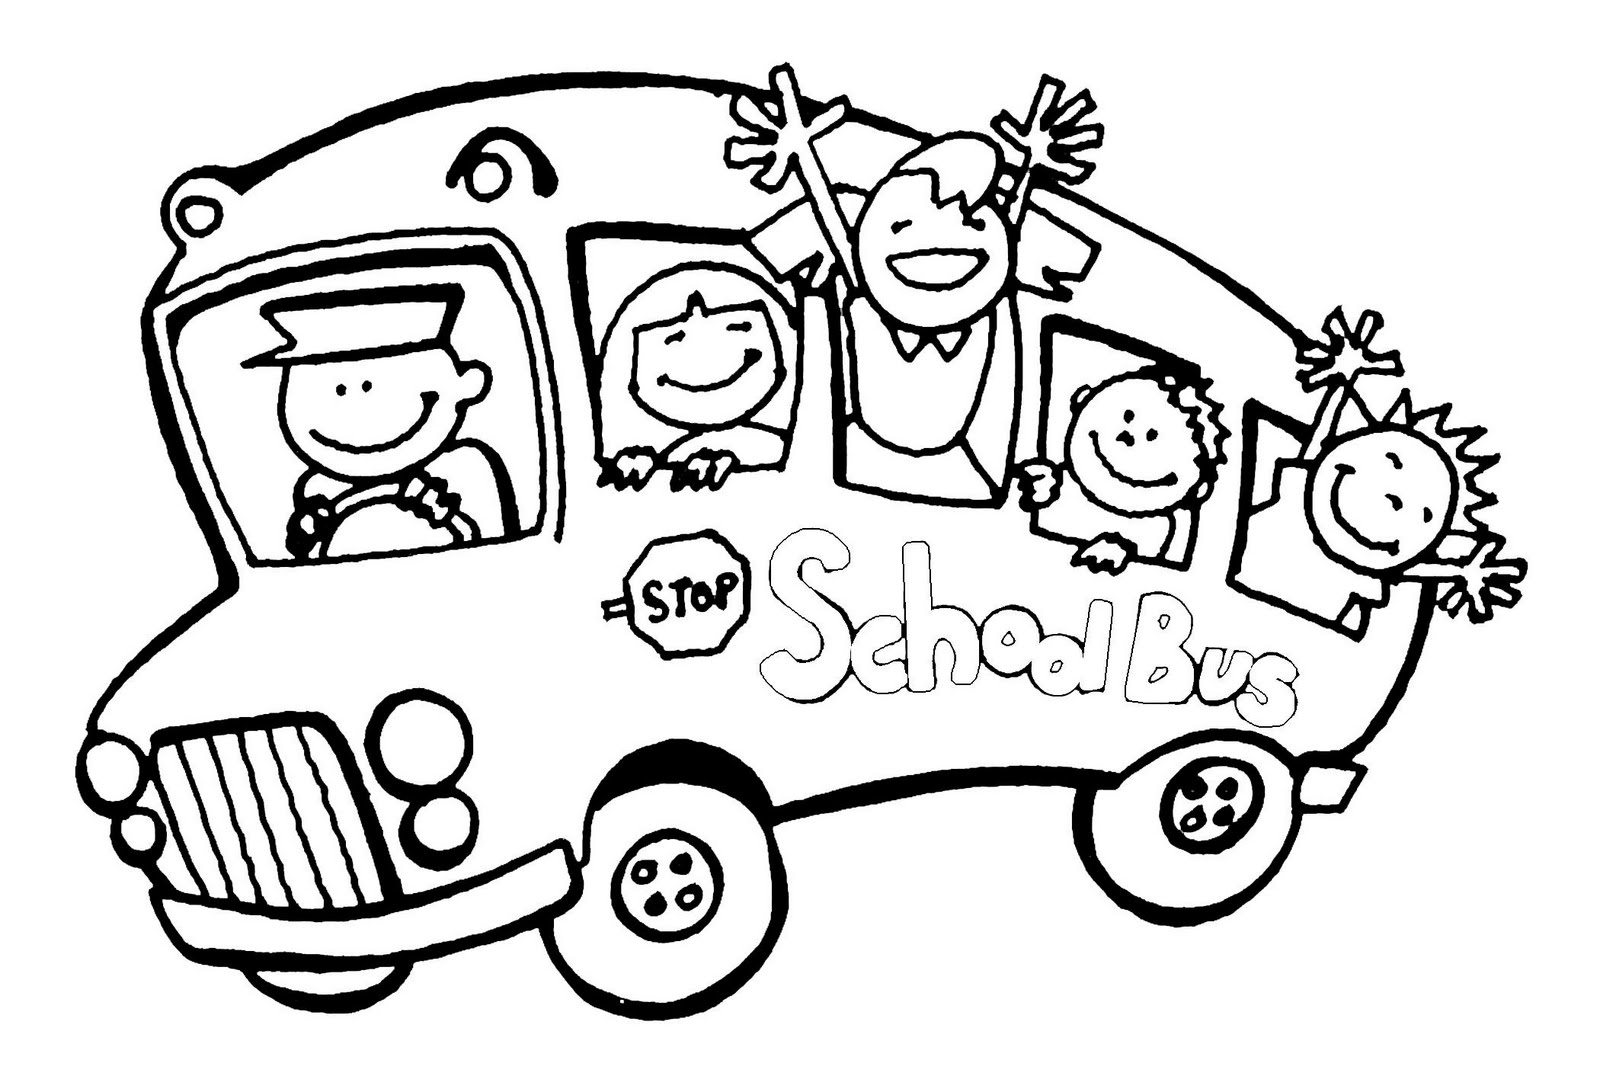 school bus drawing for kids at getdrawings com free for personal